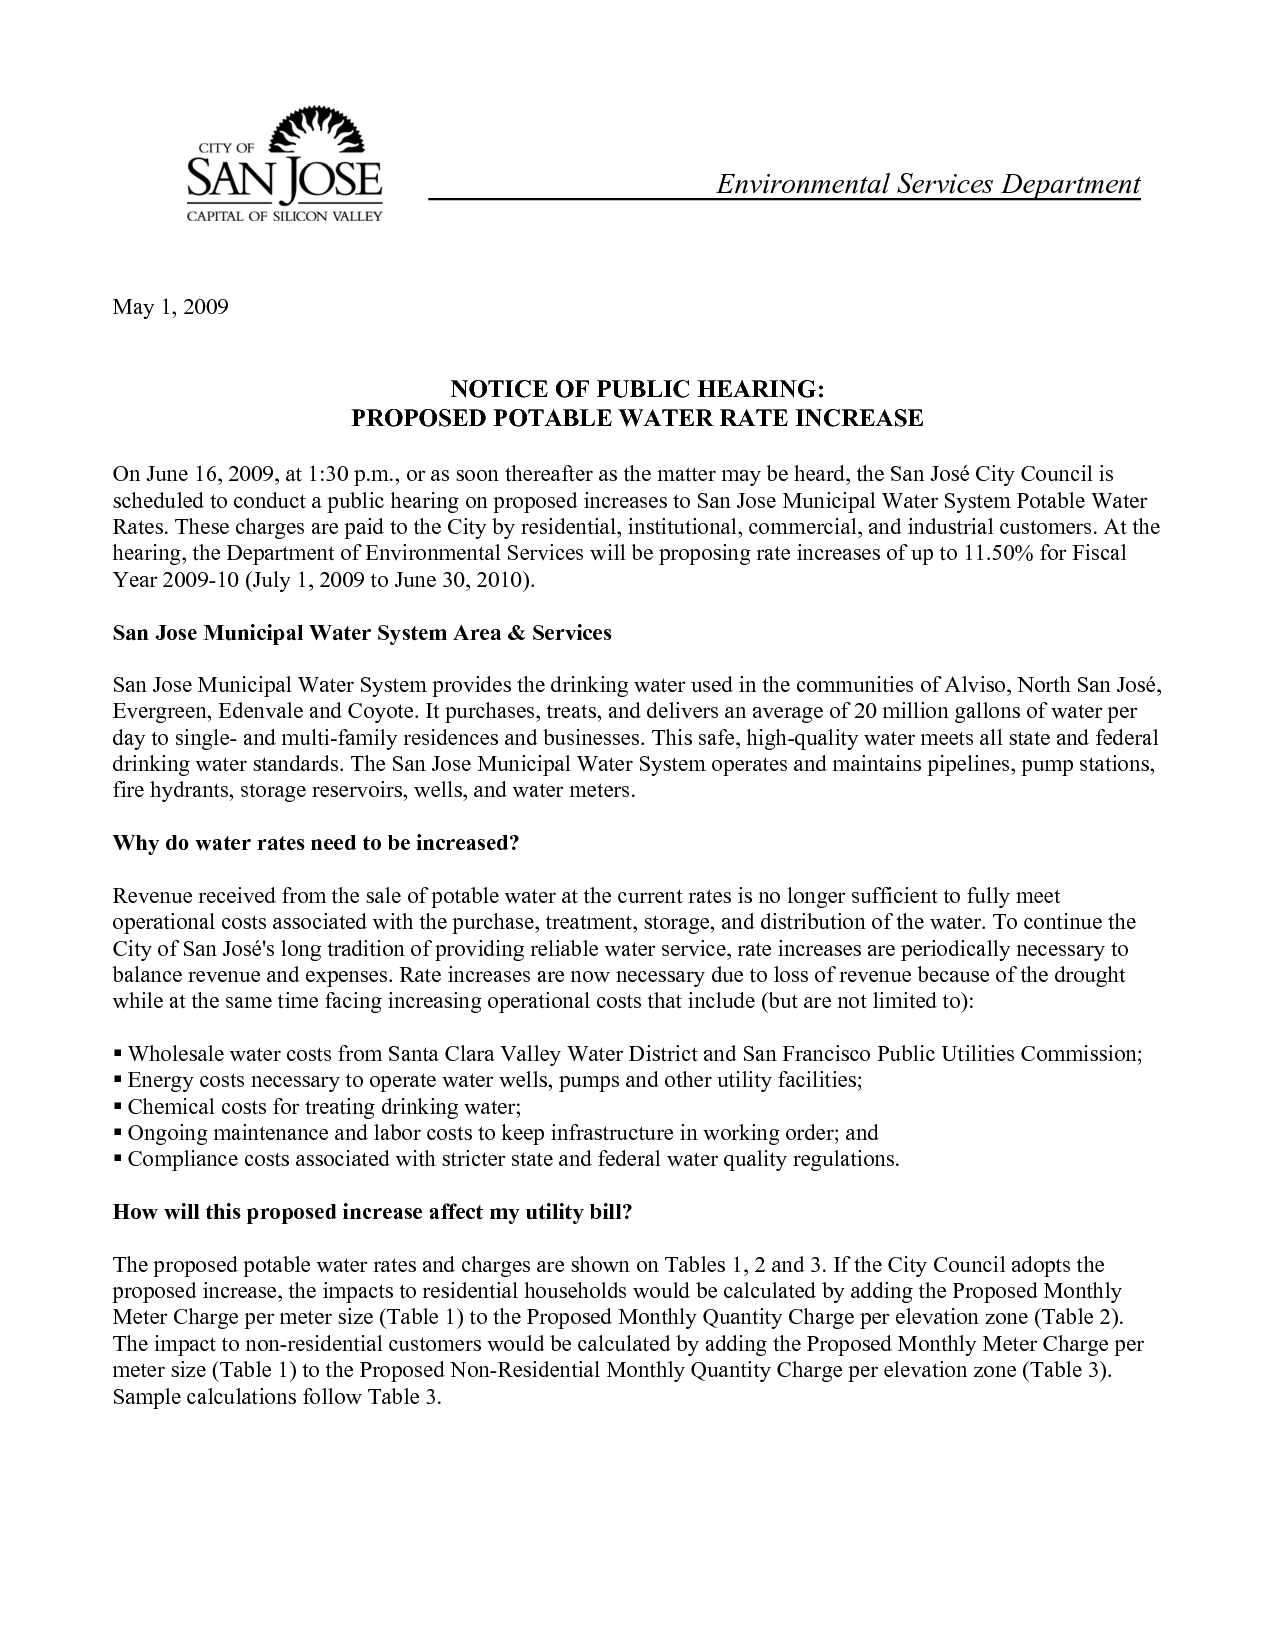 Rent Renewal Letter Template - Caral Fer Letter Proposal Hire Business Sample New Agreement for